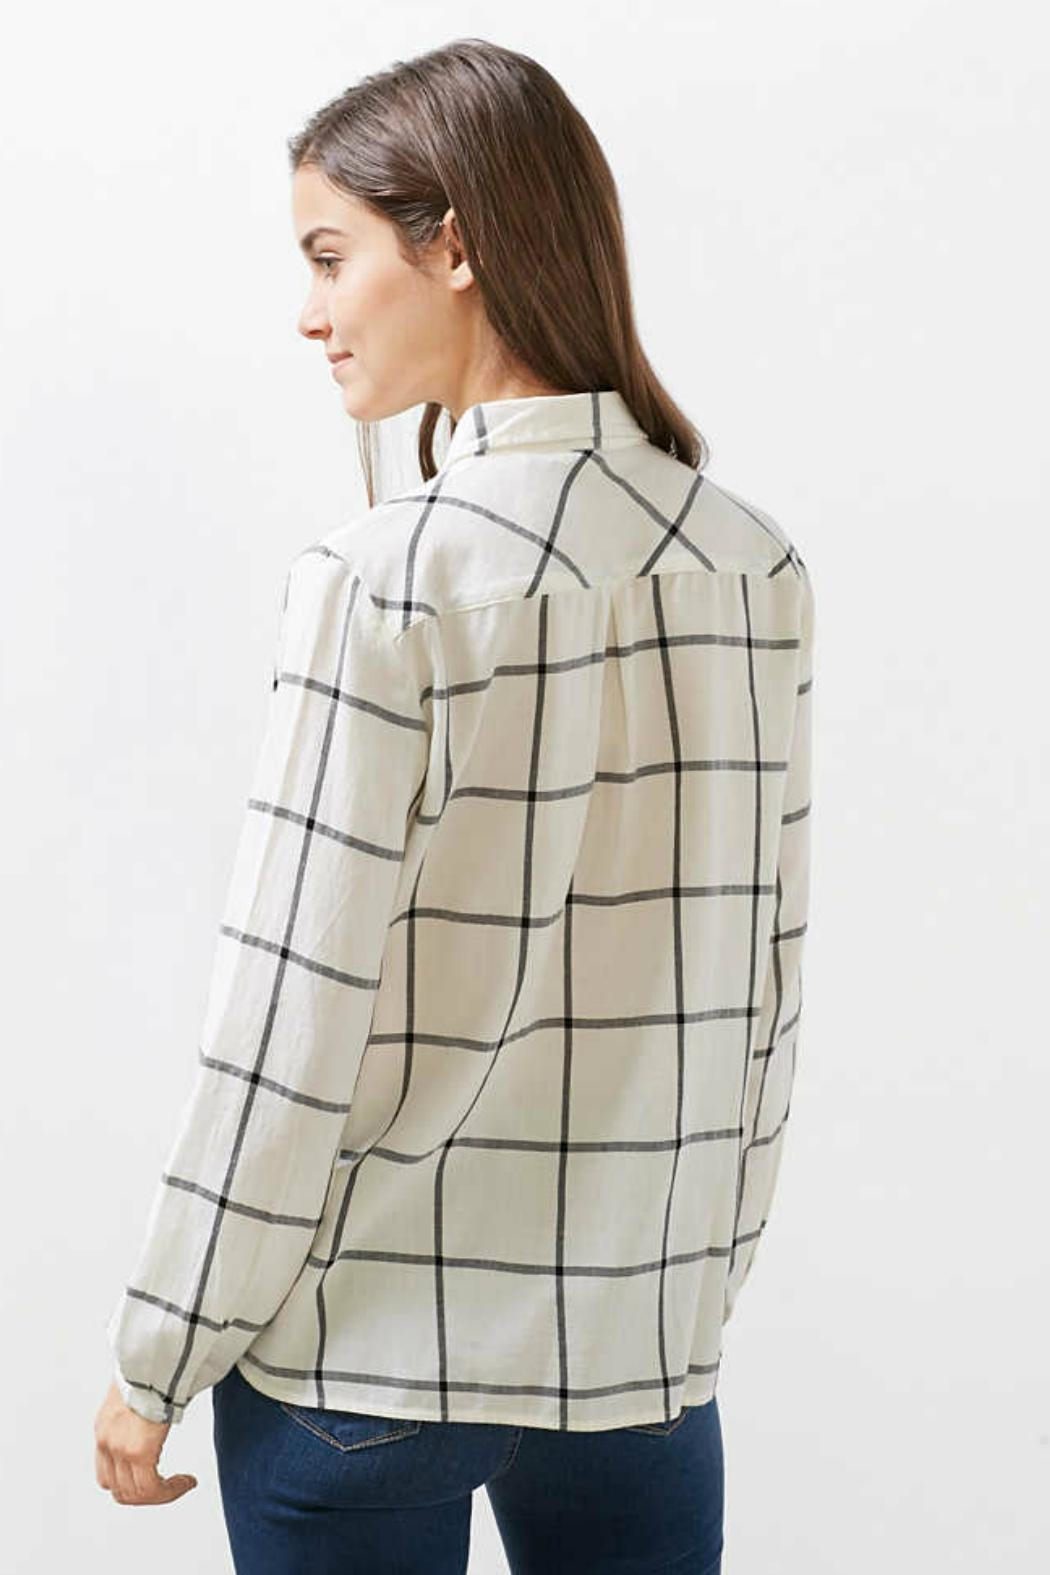 Esprit Plaid Woven Top - Front Full Image